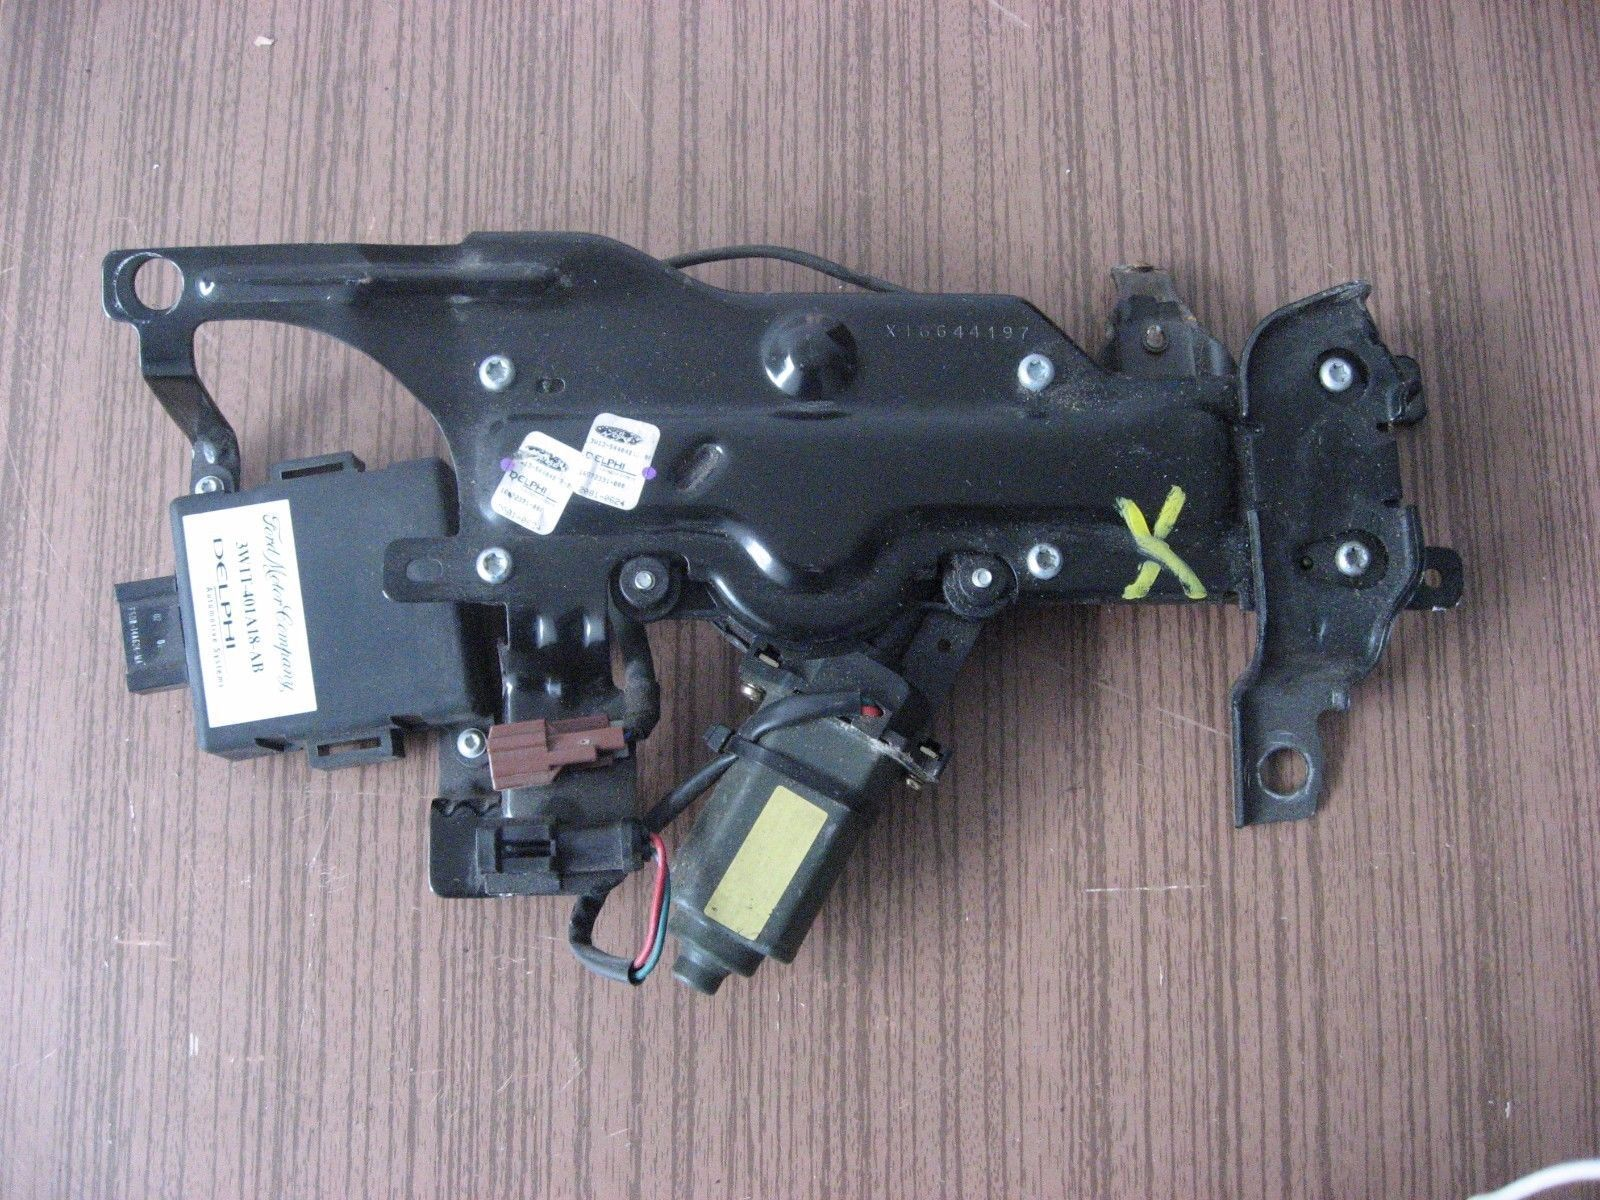 03 04 05 LINCOLN TOWN CAR REAR TRUNK ACTUATOR W/ MOTOR 3W1T-401A18-AB